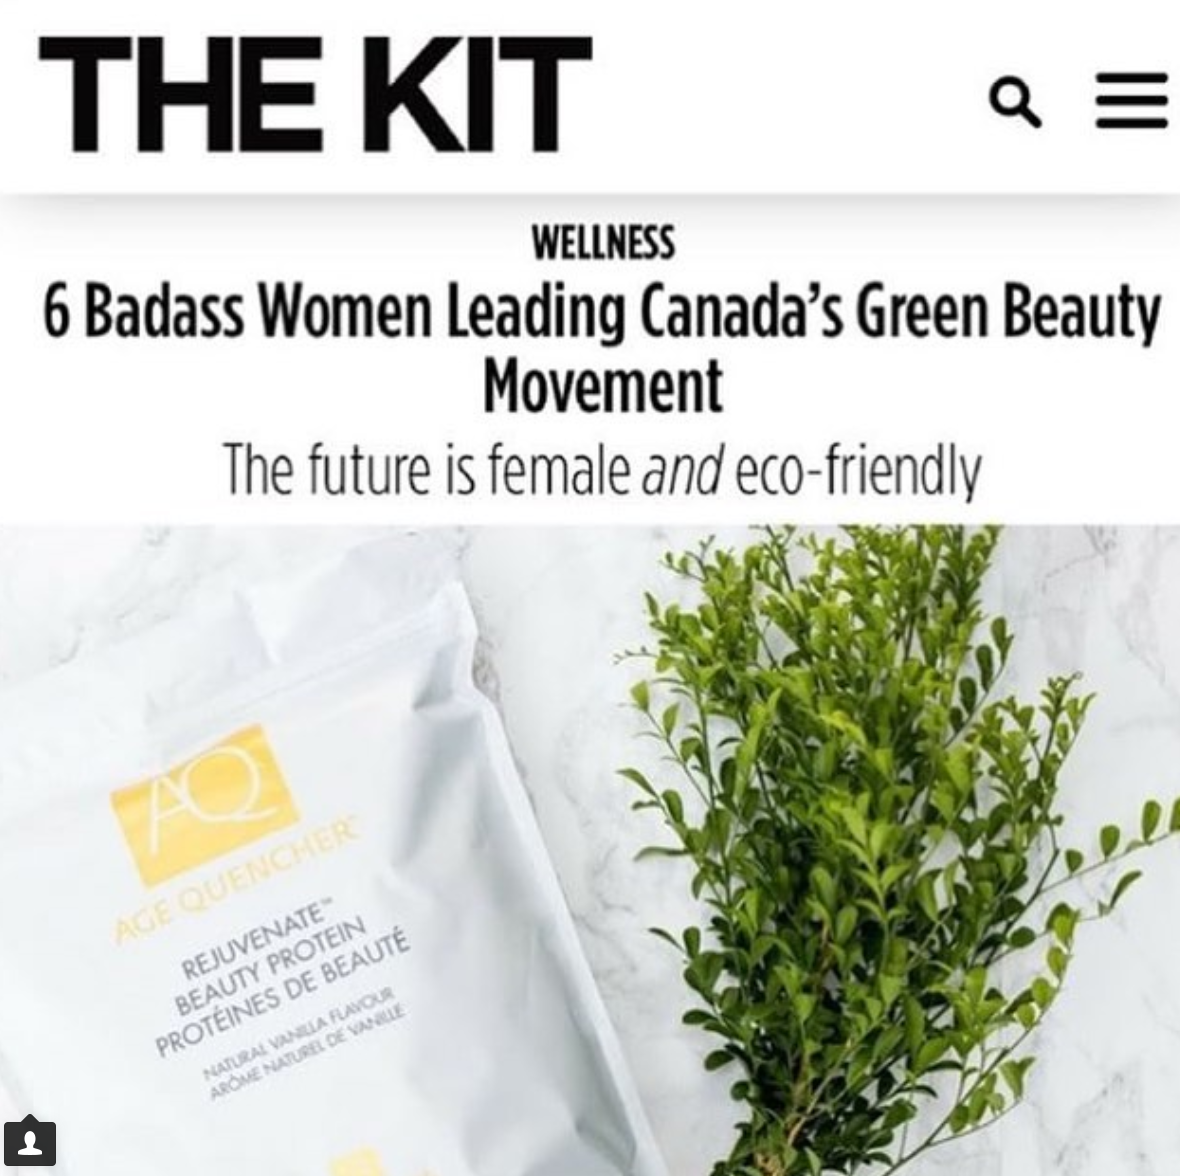 THE KIT, Green Beauty Movement